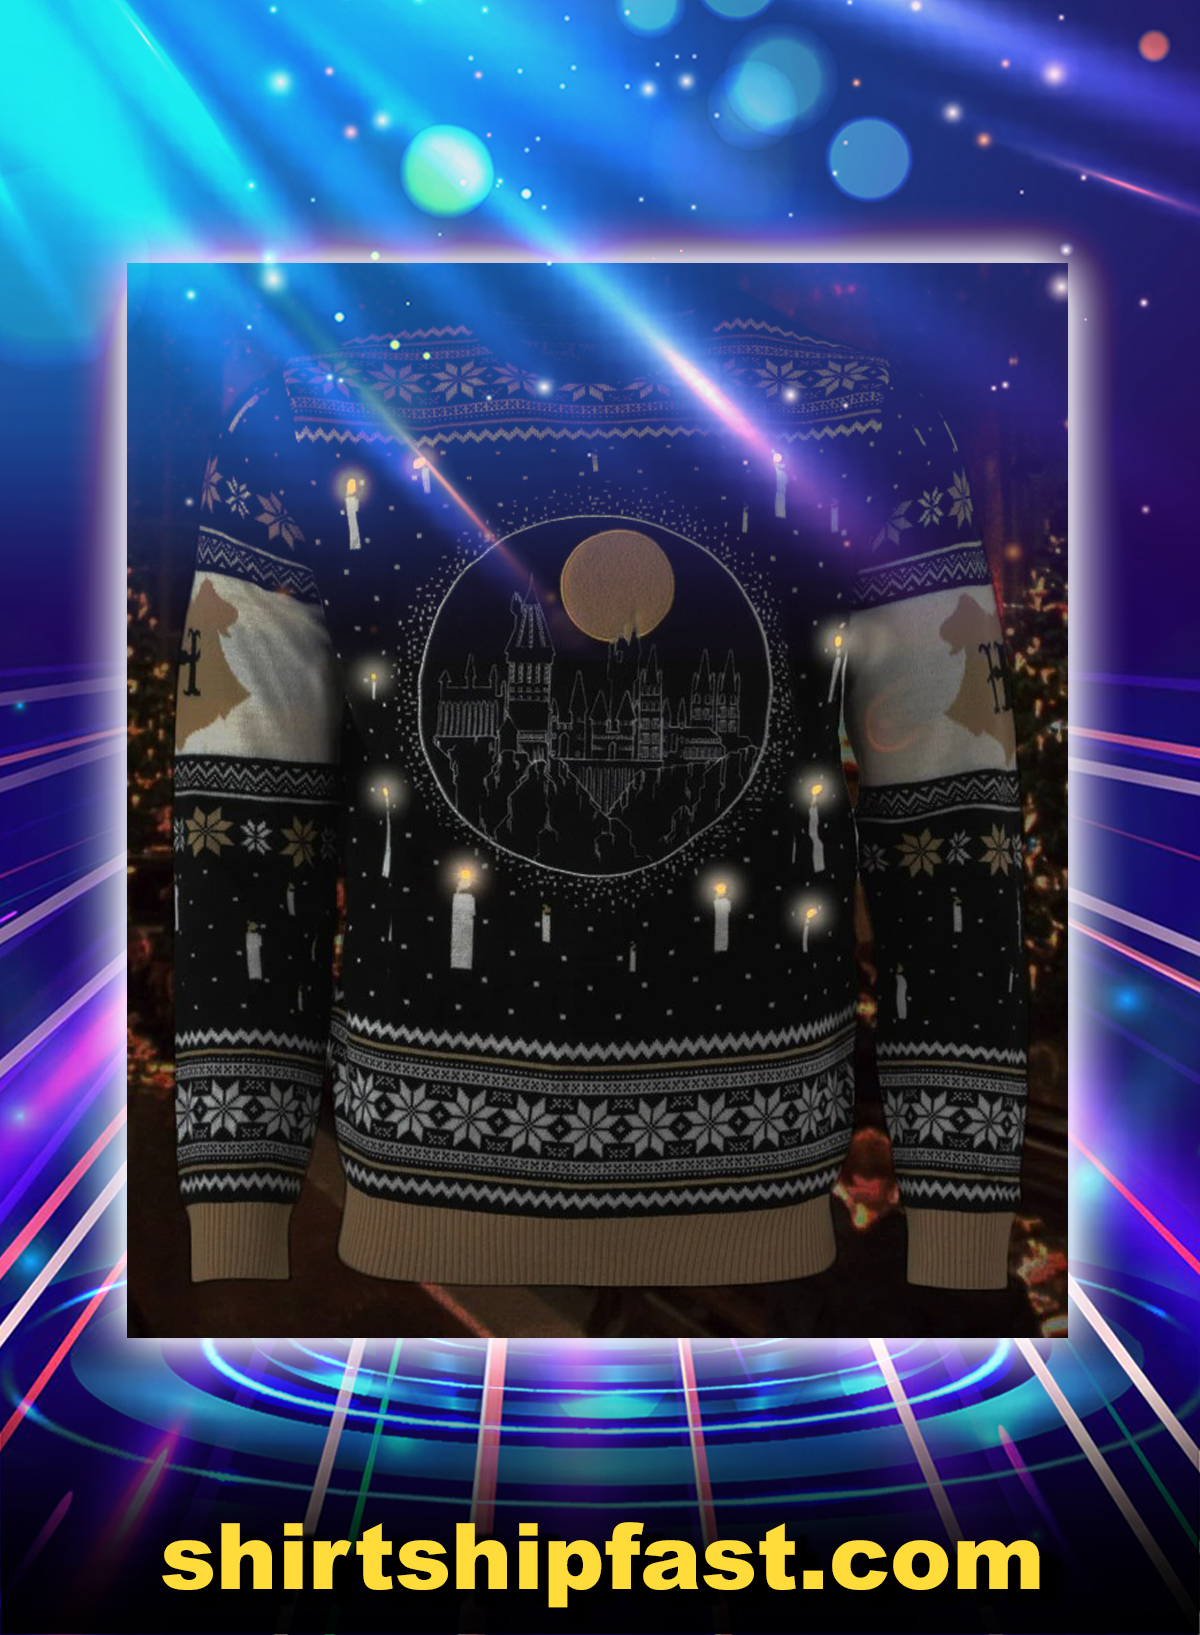 Harry potter hogwarts castle candles led ugly christmas sweater and jumper - Picture 1